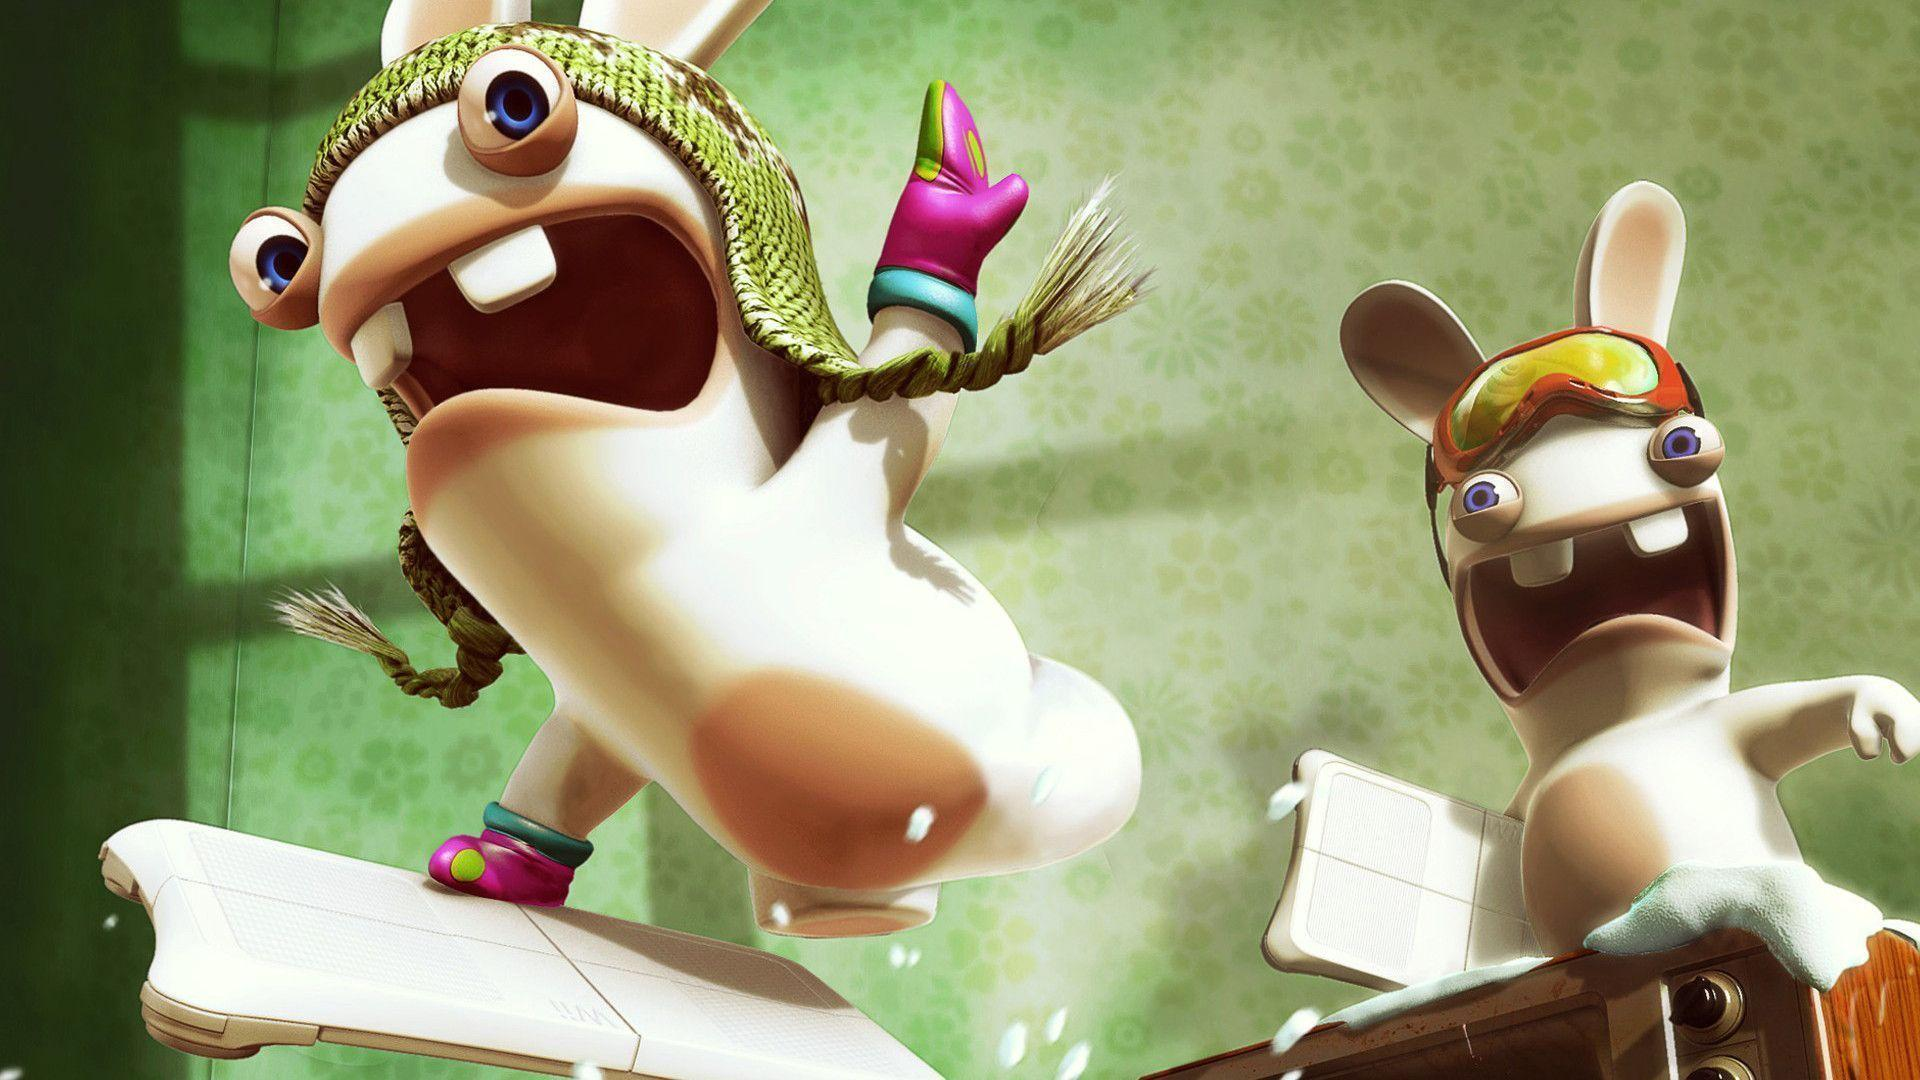 Rabbids Invasion Funny 3d Cartoon Wallpapers